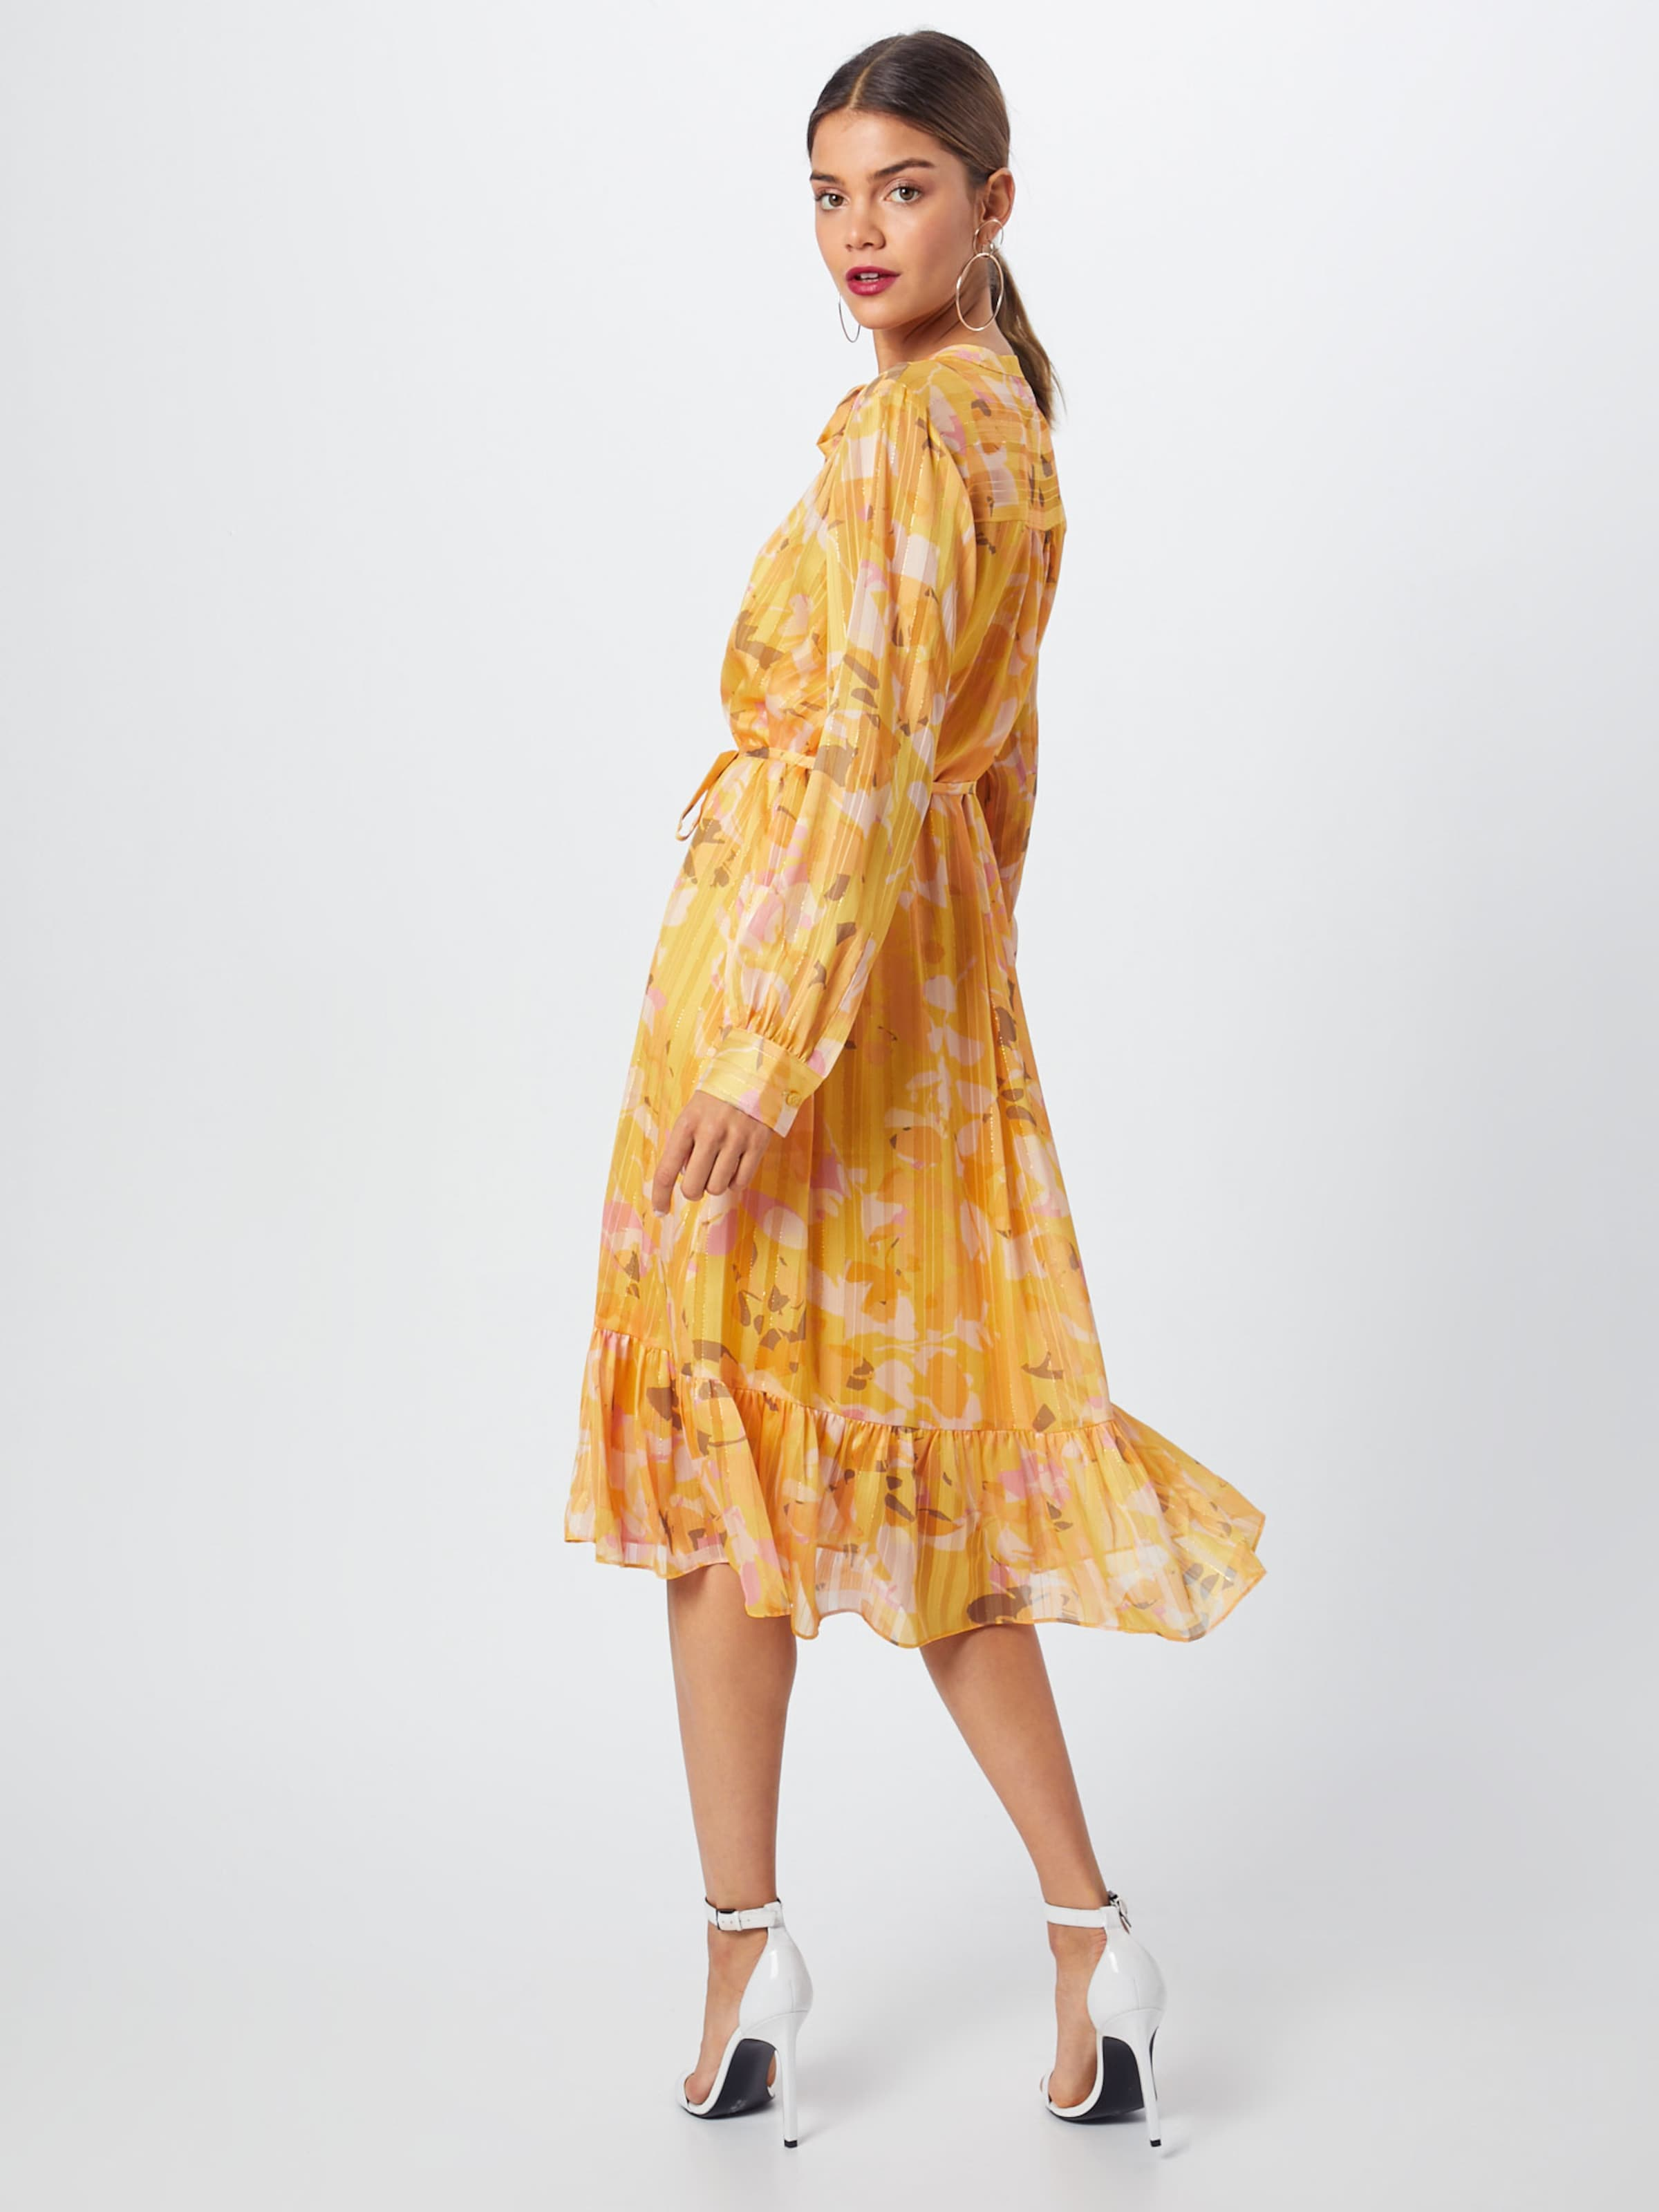 D'été En Female Jaune Second Robe NwPn0O8kX